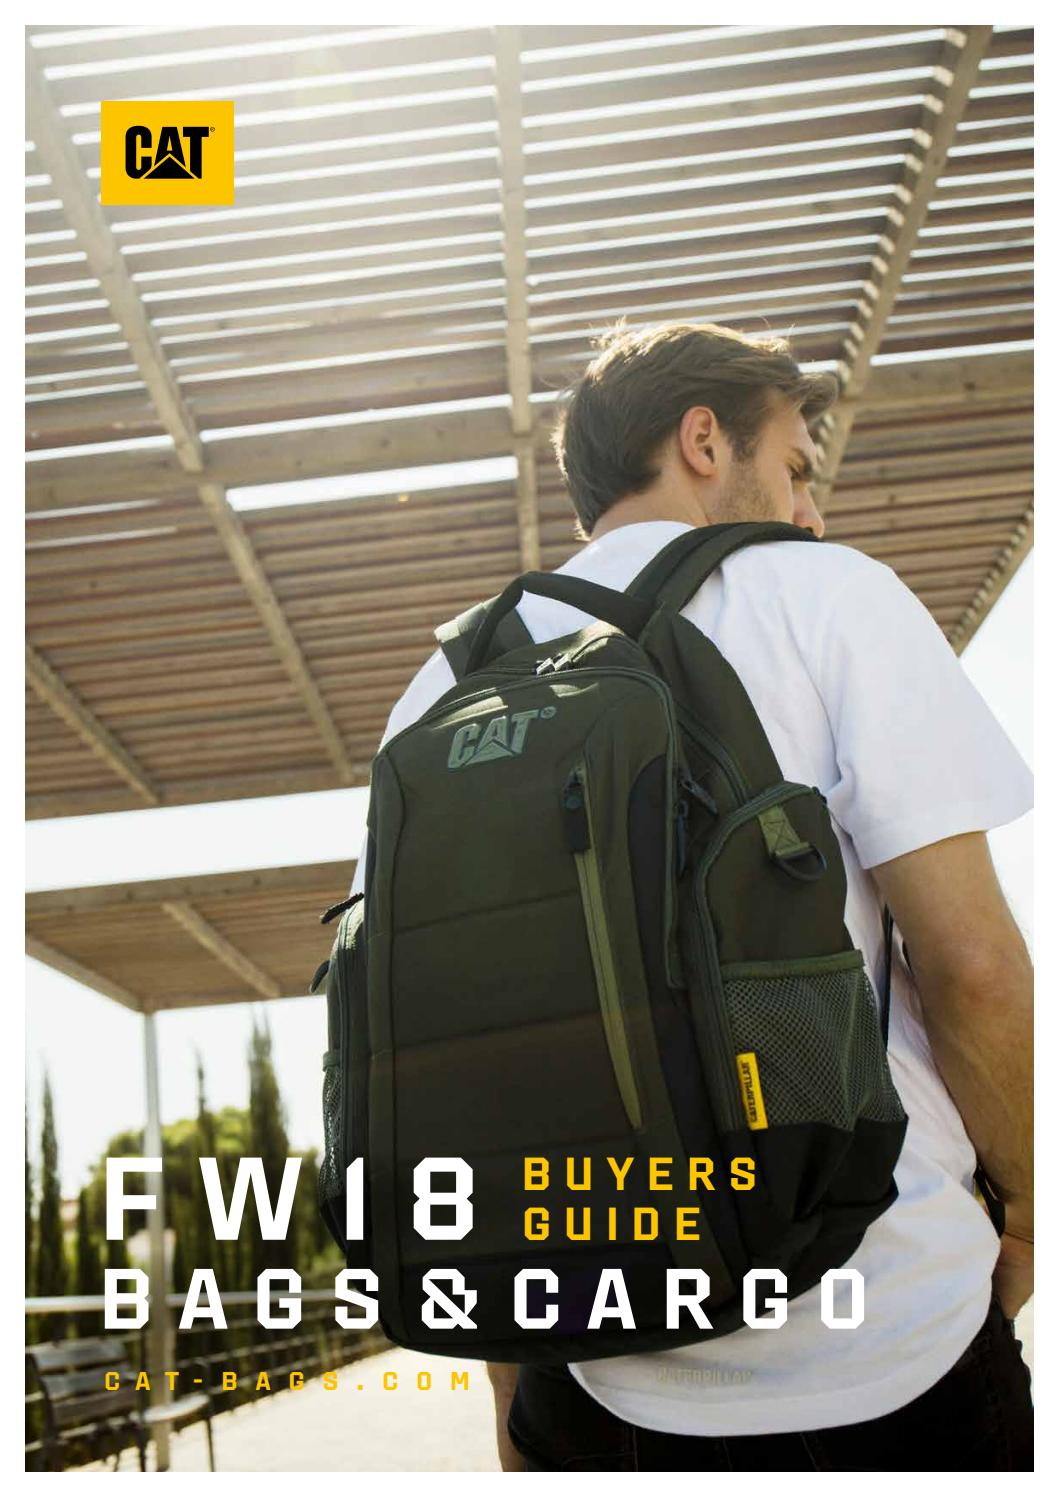 2ac466103 Cat® Bags FW18 Buyers Guide by Grown Up Licenses - issuu